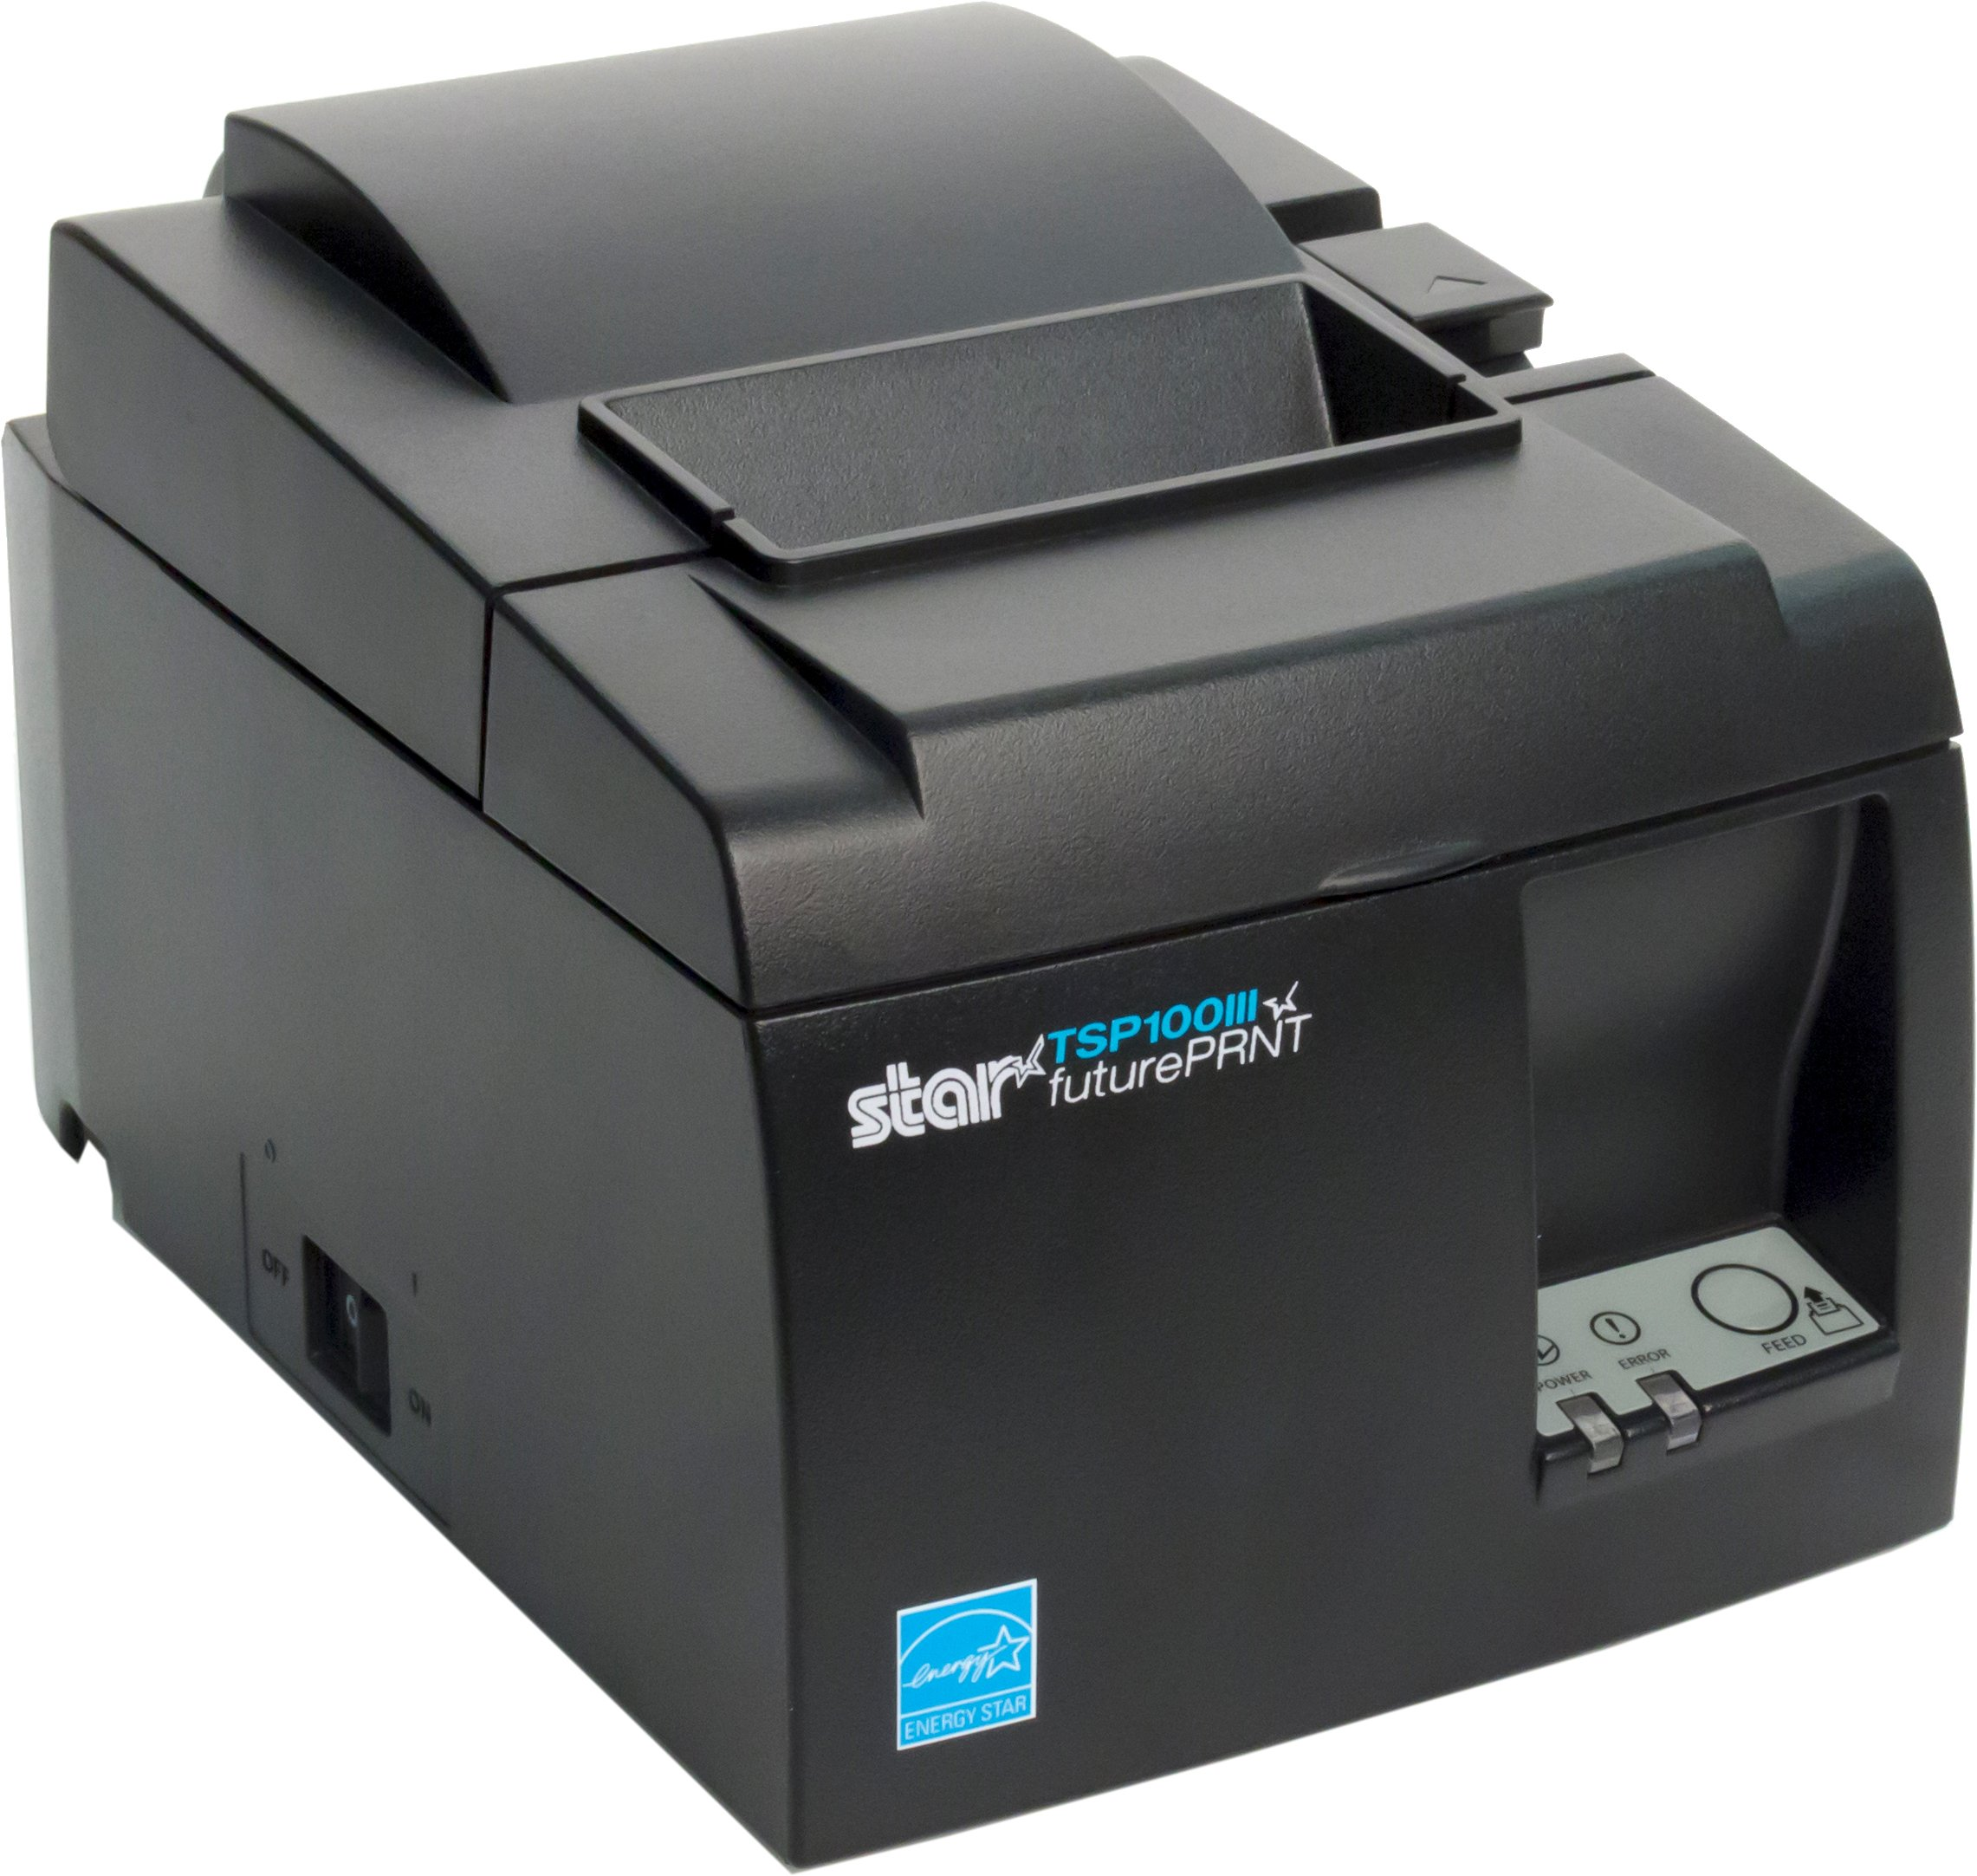 Star Micronics TSP143IIIU USB Thermal Receipt Printer with Device and Mfi USB Ports, Auto-cutter, and Internal Power Supply - Gray by Star Micronics (Image #6)